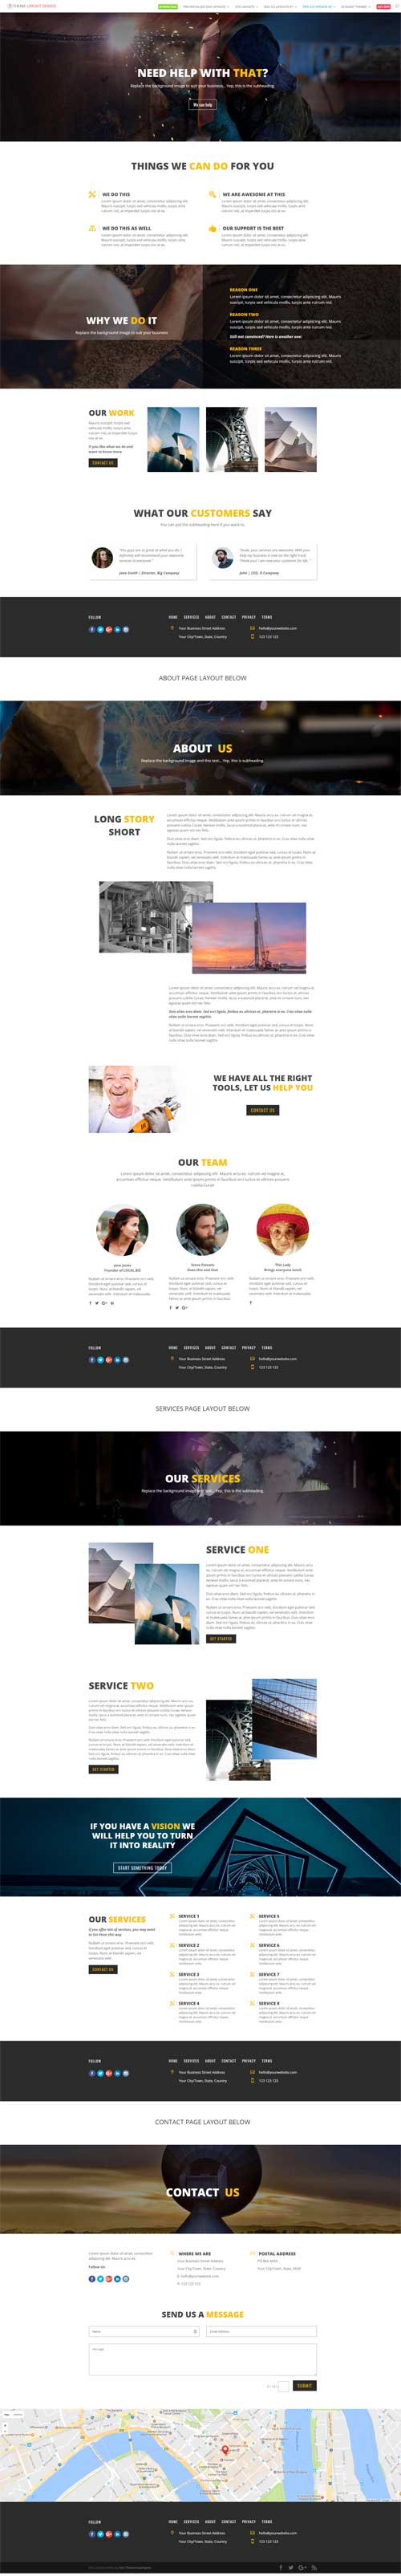 divi small business layout pack